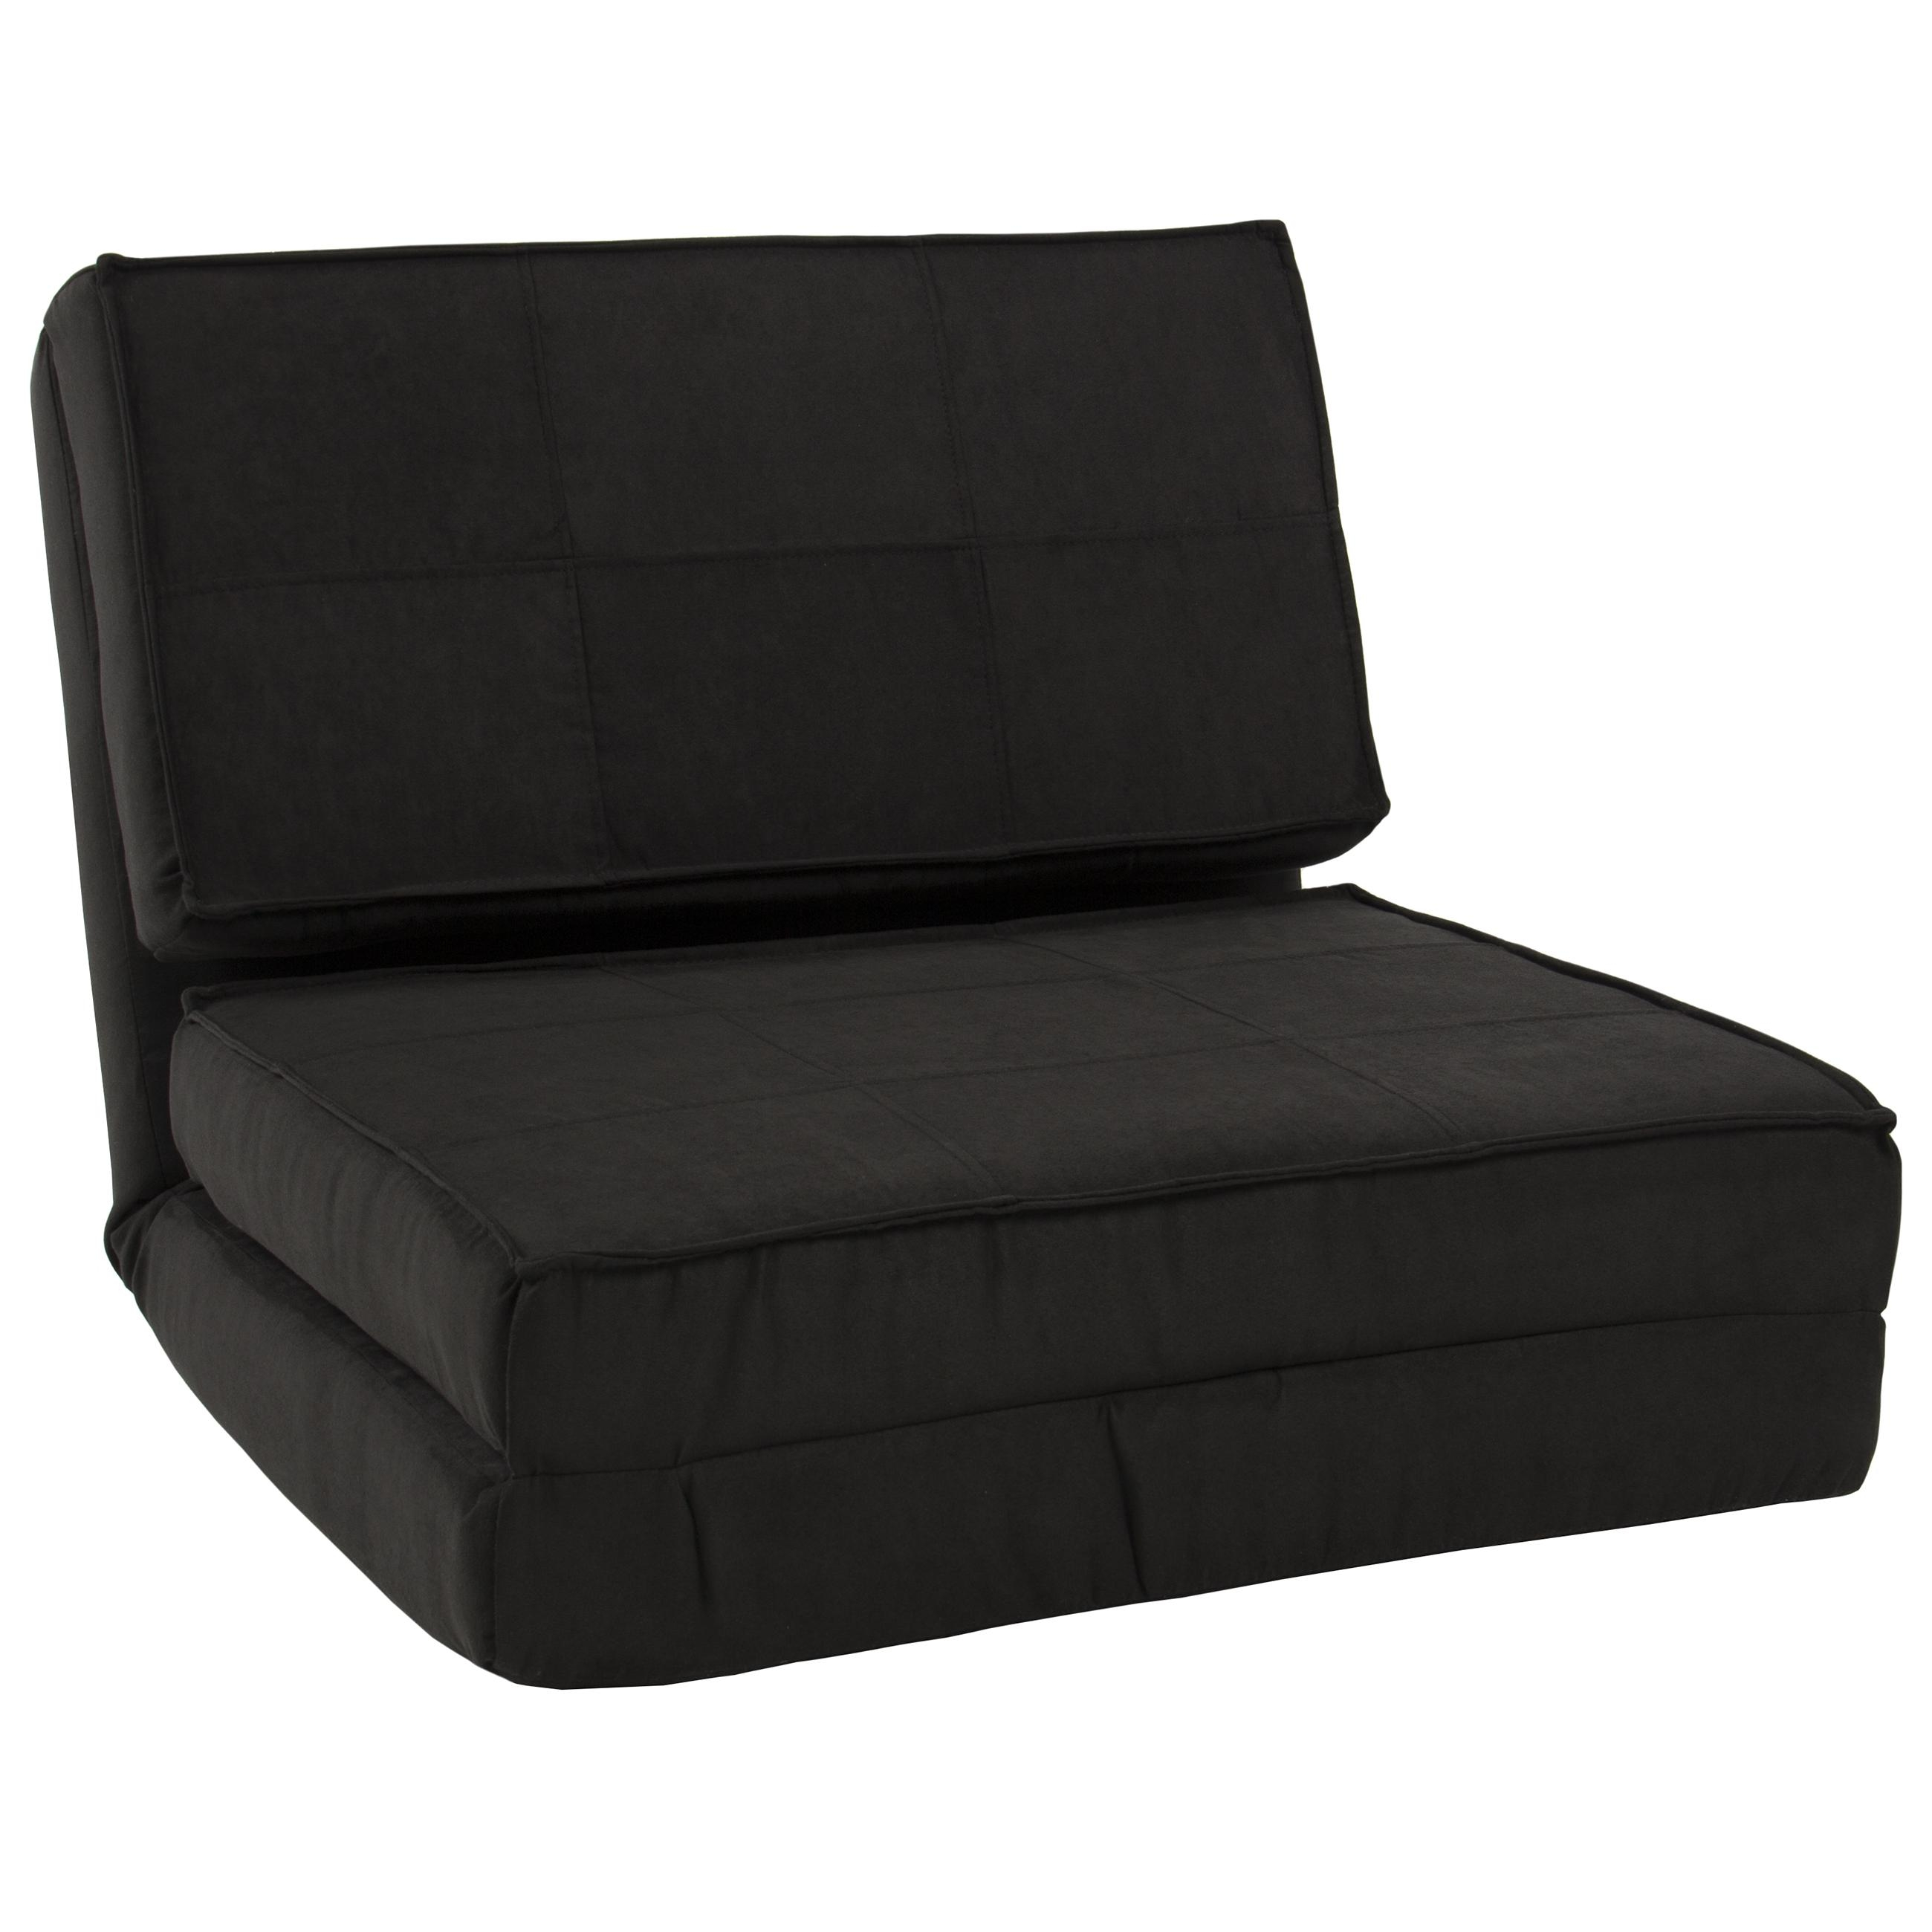 Best Choice Products Convertible Sleeper Chair Bed (Black Intended For Fold Up Sofa Chairs (Image 8 of 22)